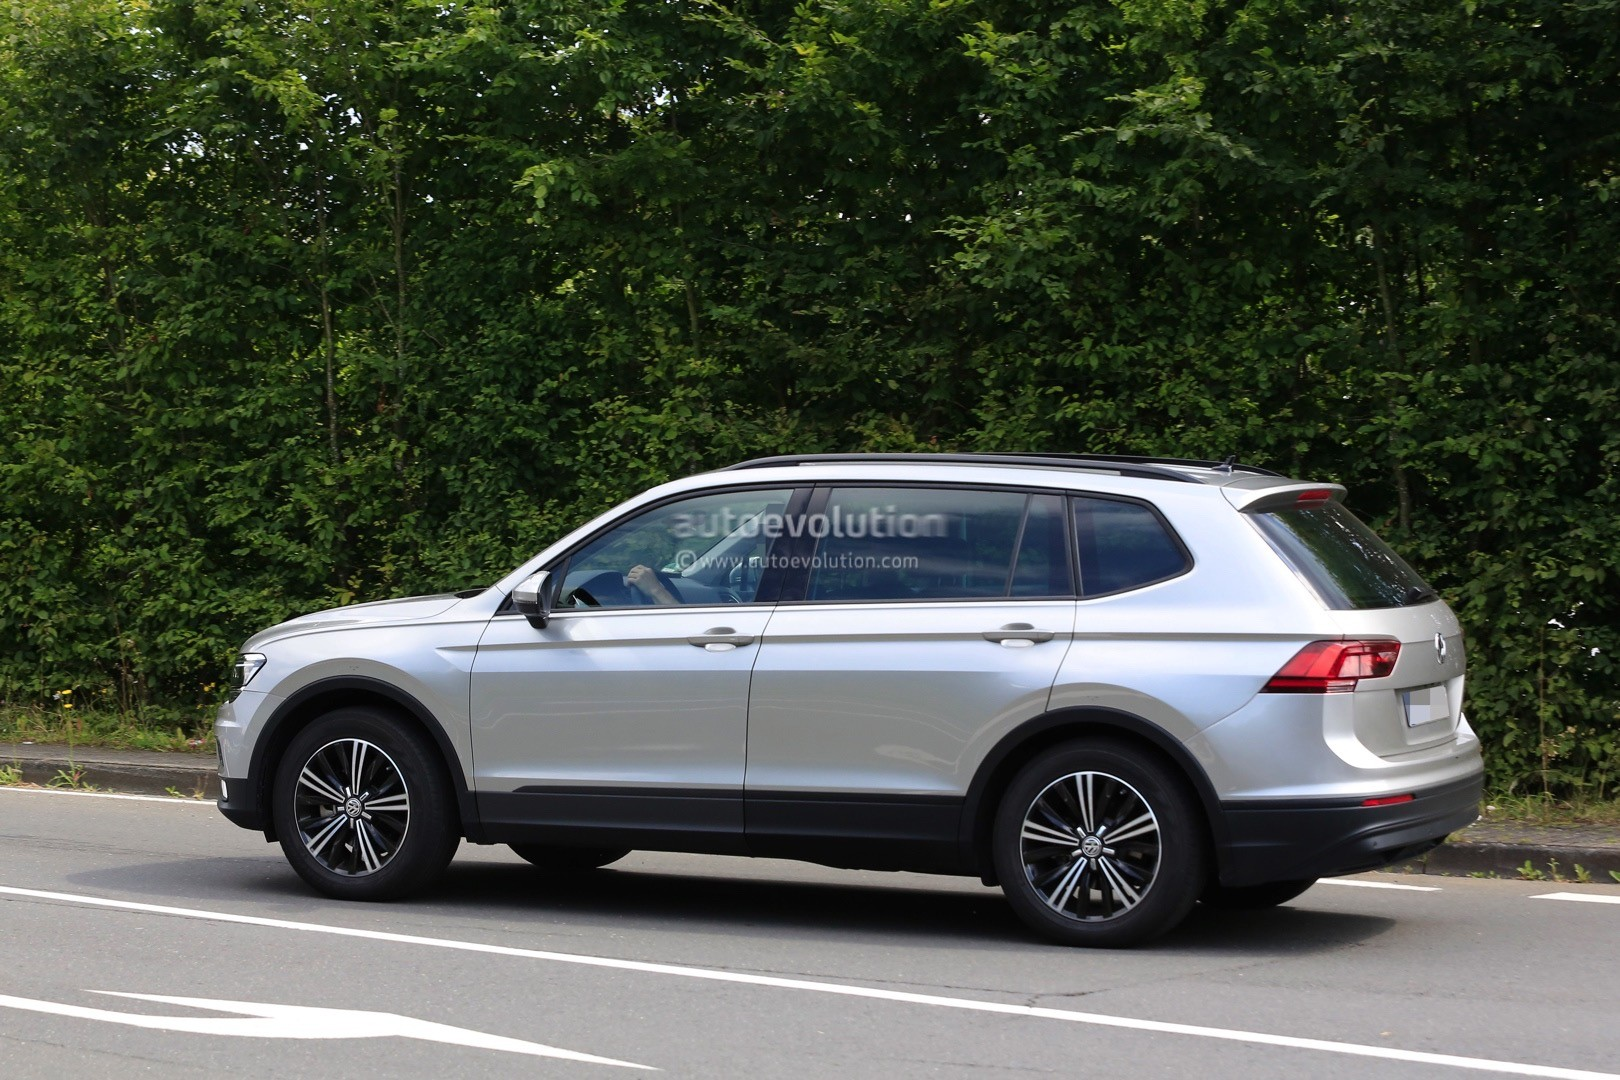 Tiguan Gte 2018 >> 2018 Volkswagen Tiguan Allspace 7-Seater Teased for Detroit - autoevolution